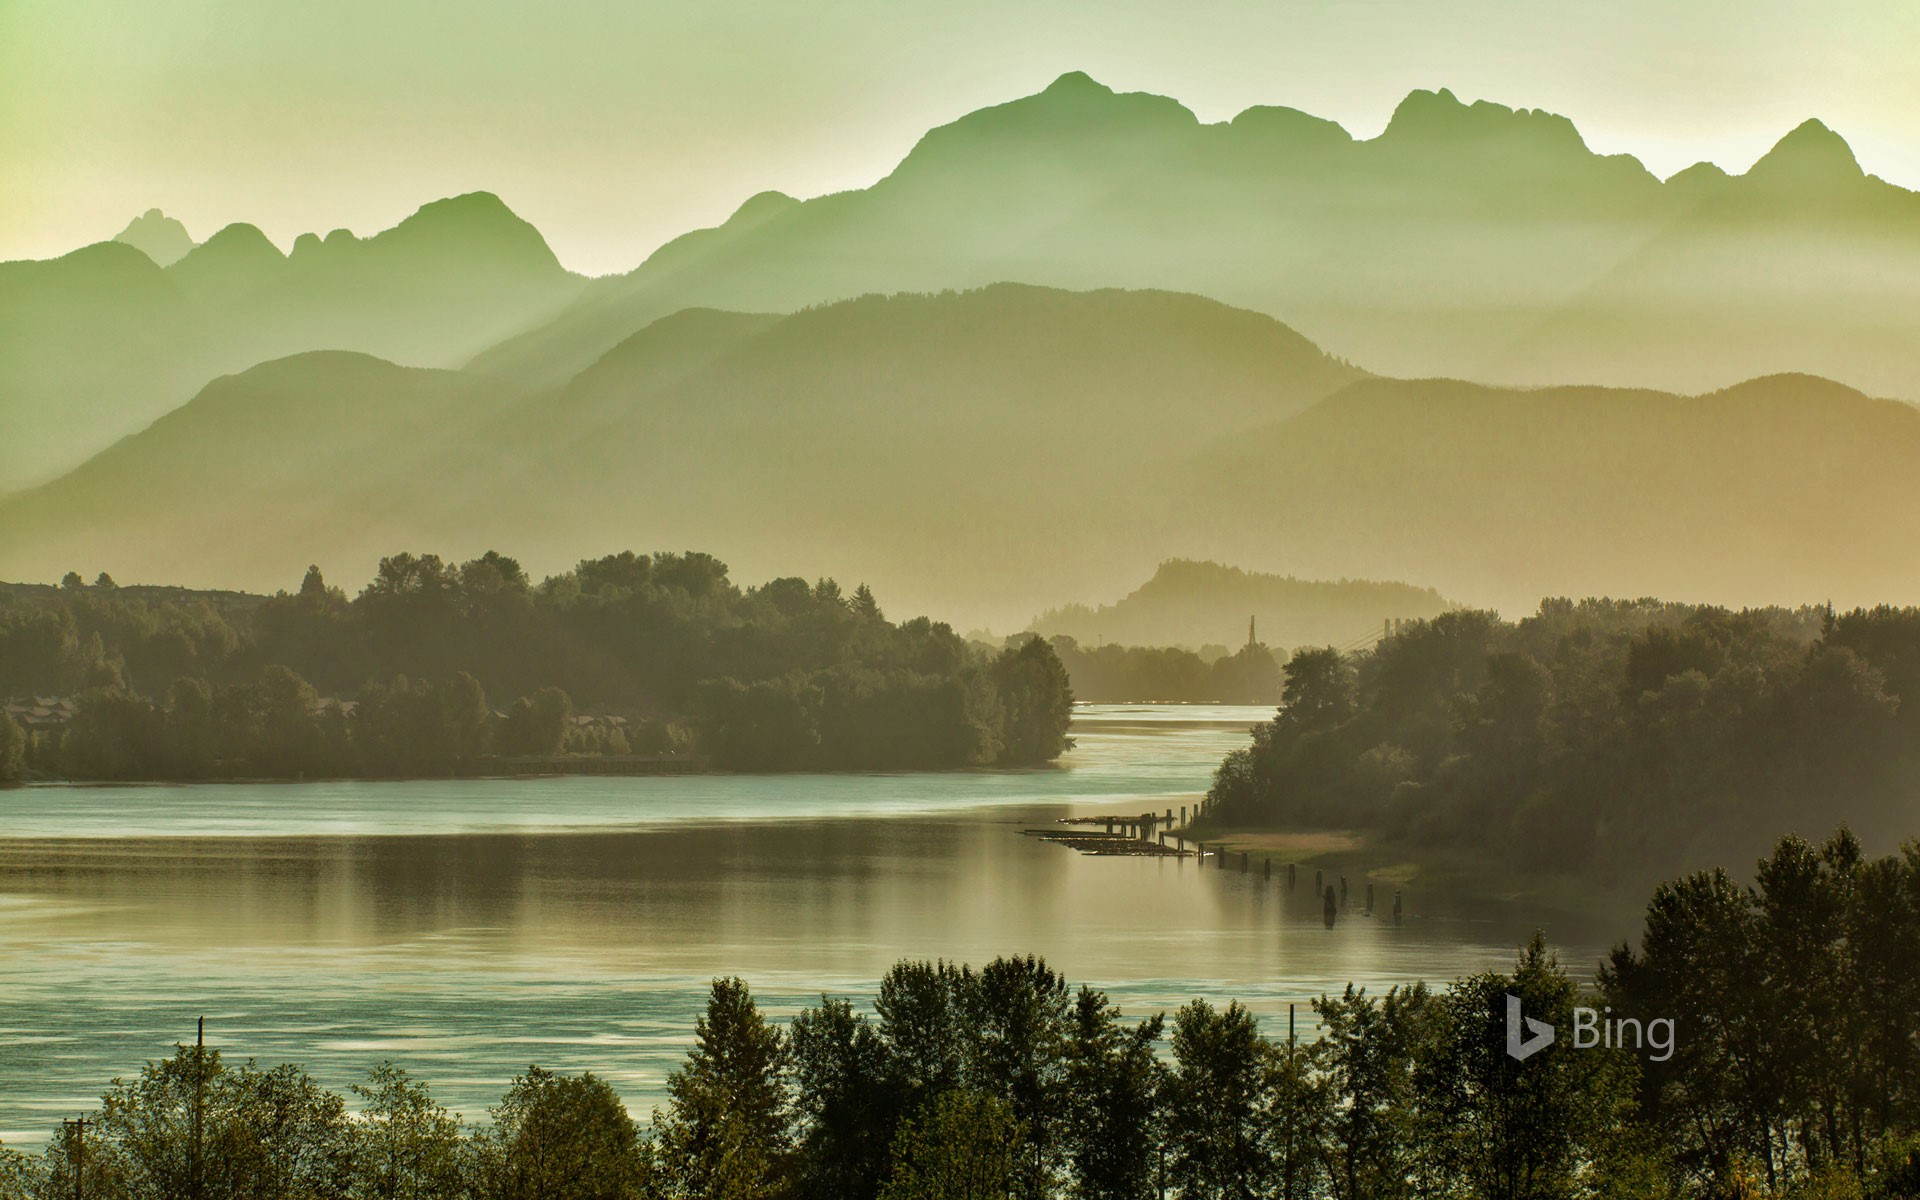 Fraser River, east of Vancouver, British Columbia, Canada, with the Golden Ears peaks